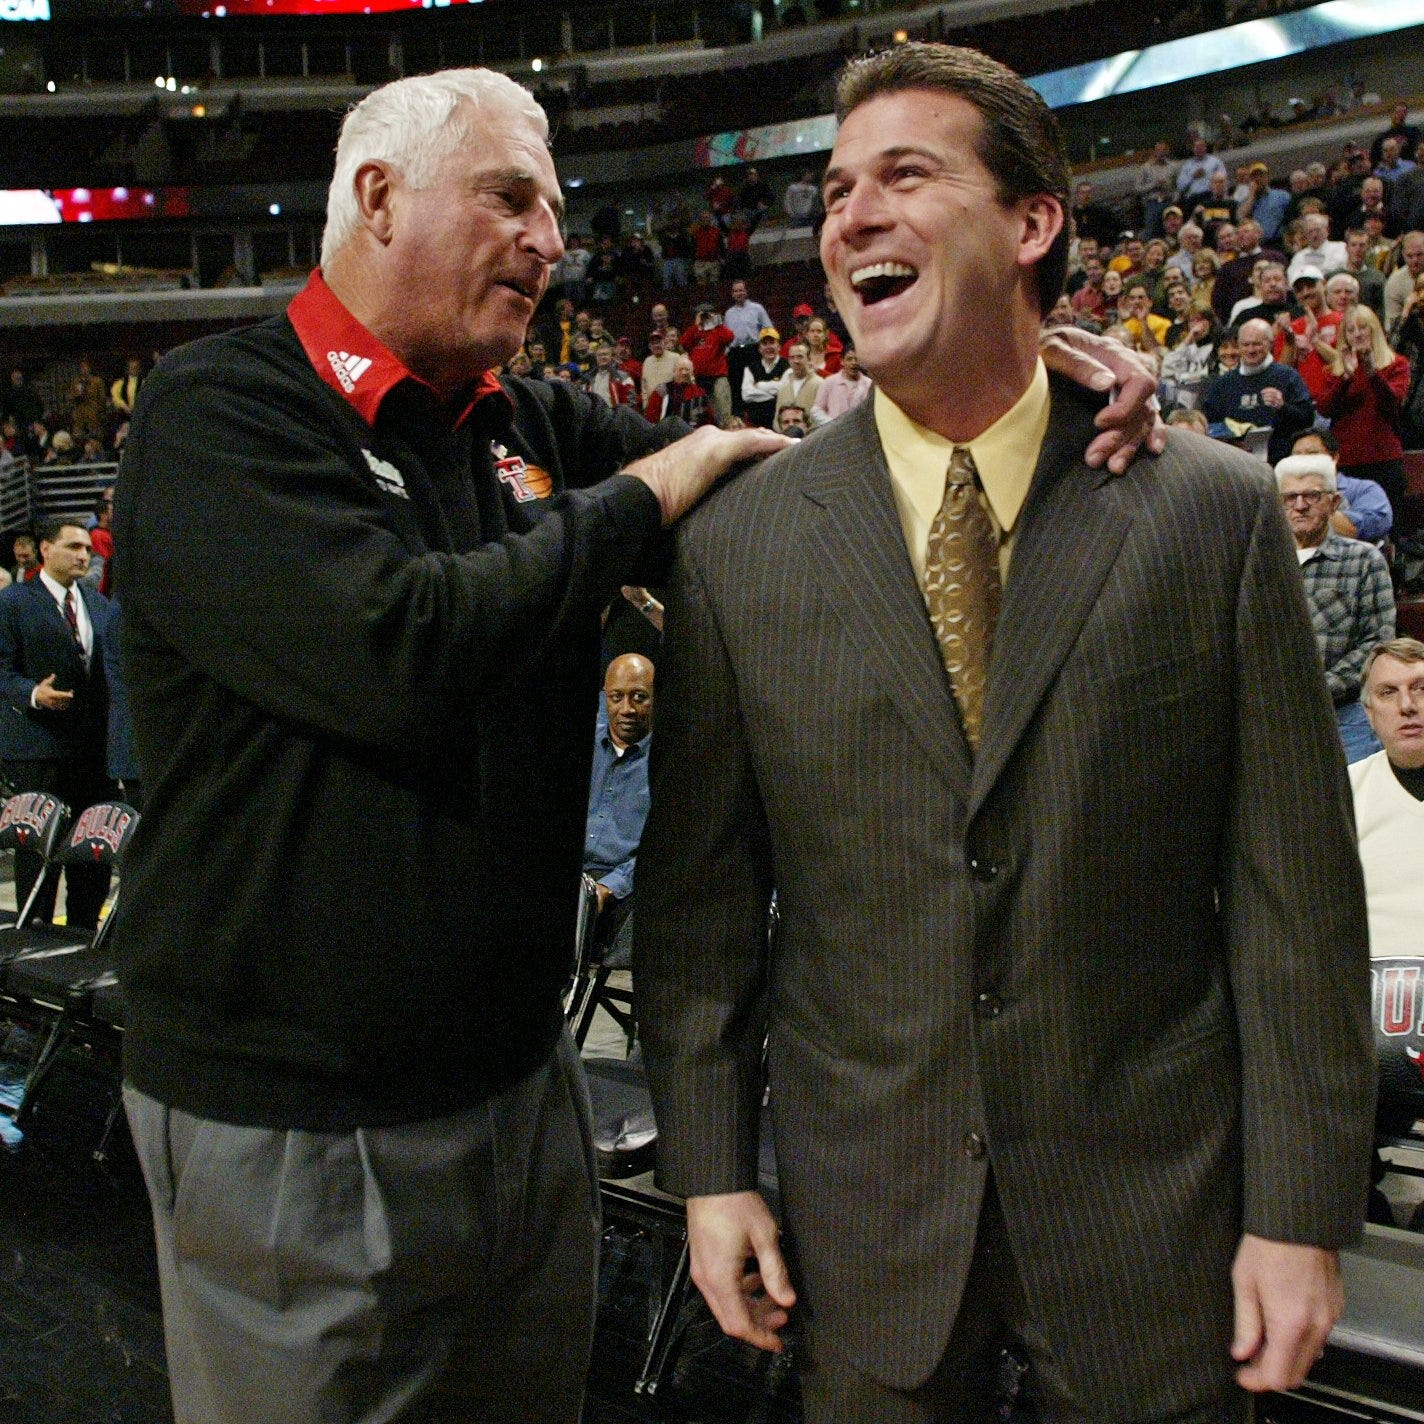 Steve Alford to coach Nevada basketball? Reactions to news around former UCLA coach